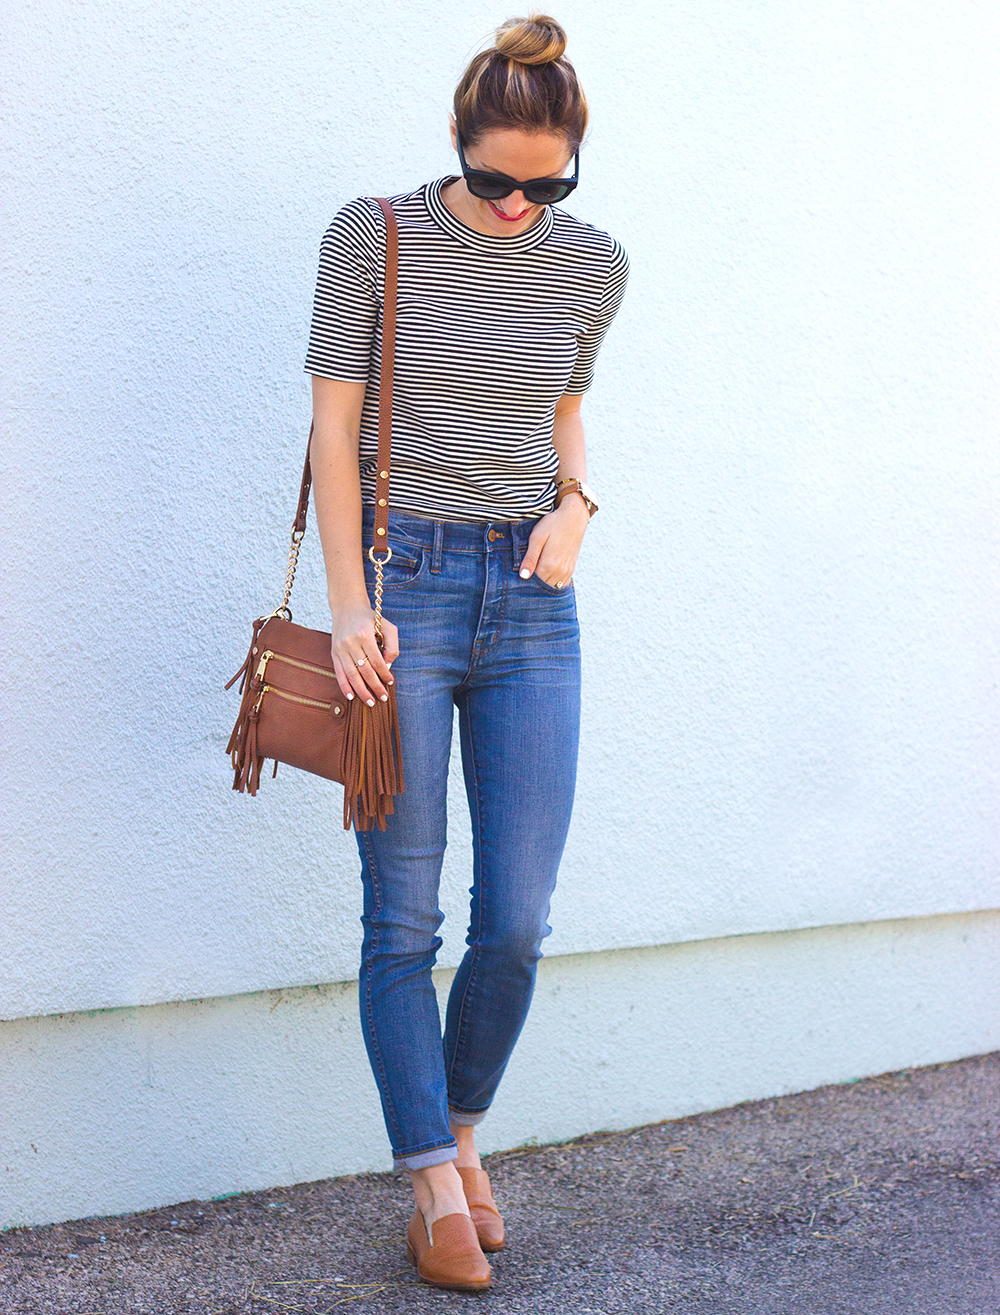 livvyland-blog-olivia-watson-austin-texas-fashion-blogger-madewell-high-riser-skinny-crop-jeans-in-bayview-tan-loafer-flats-outfit-2